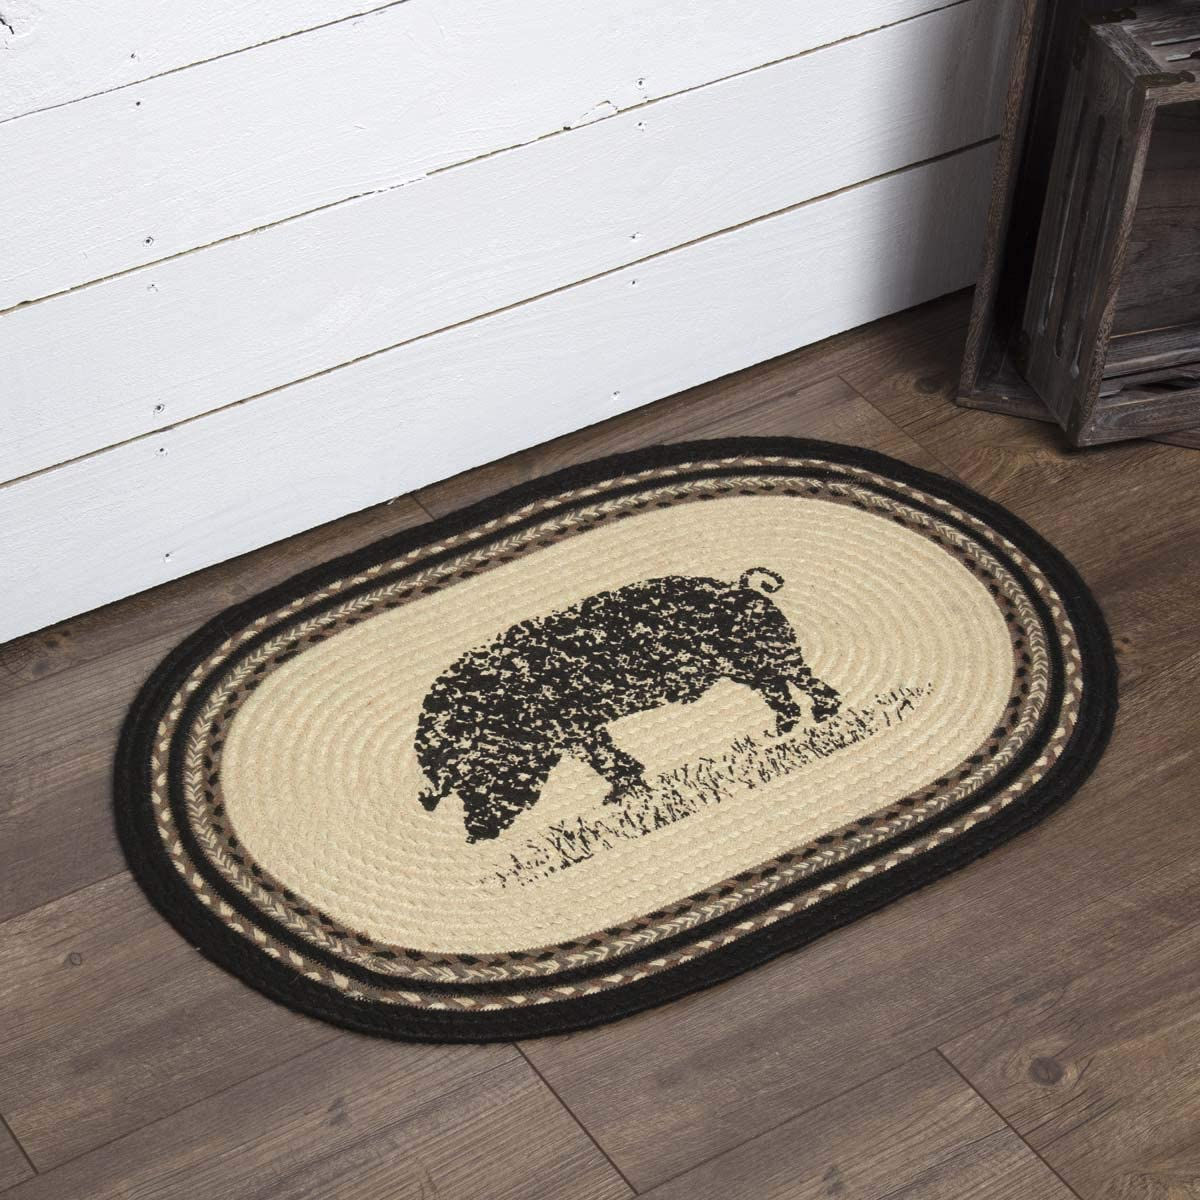 VHC Brands 38043 Farmhouse Flooring Miller Farm Charcoal Pig Jute Stenciled Nature Print Oval Rug, One Size, Bleached White